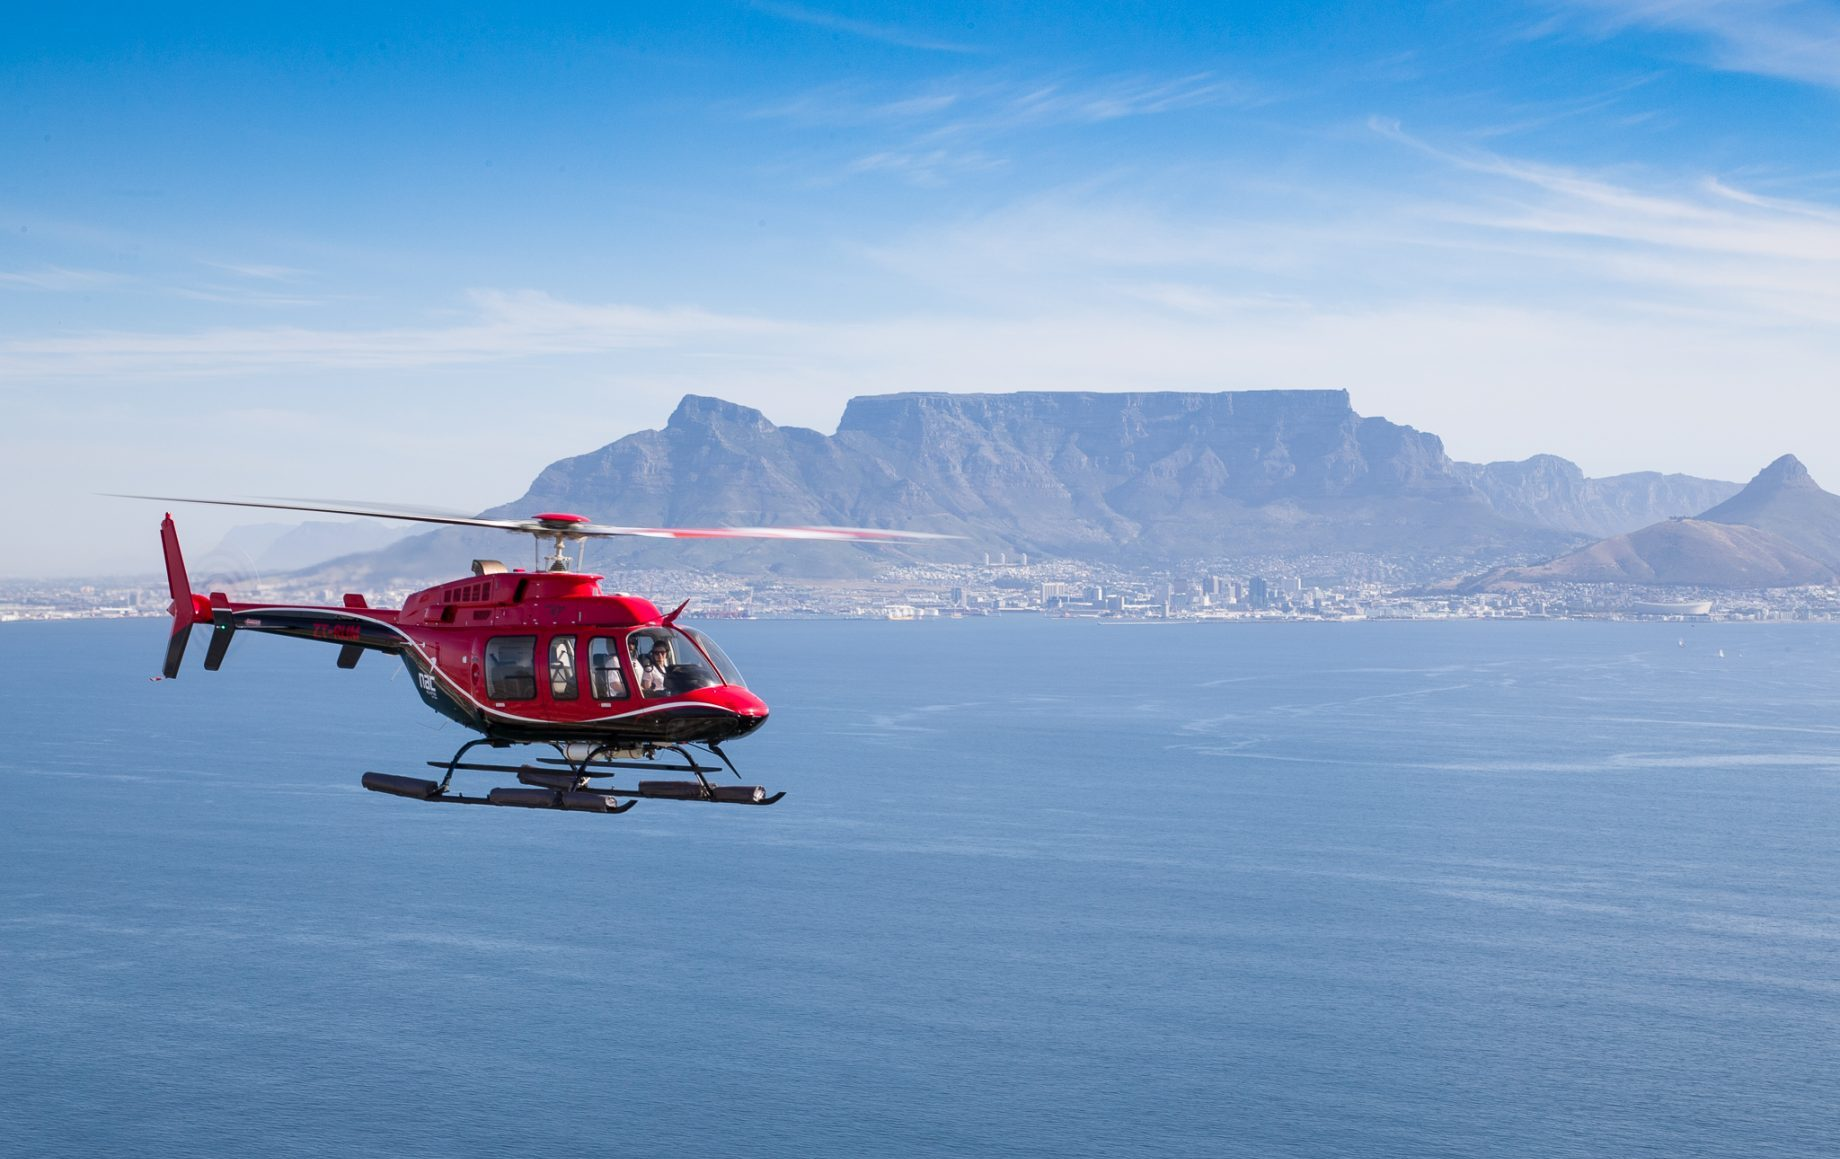 A helicopter over the ocean by Cape town